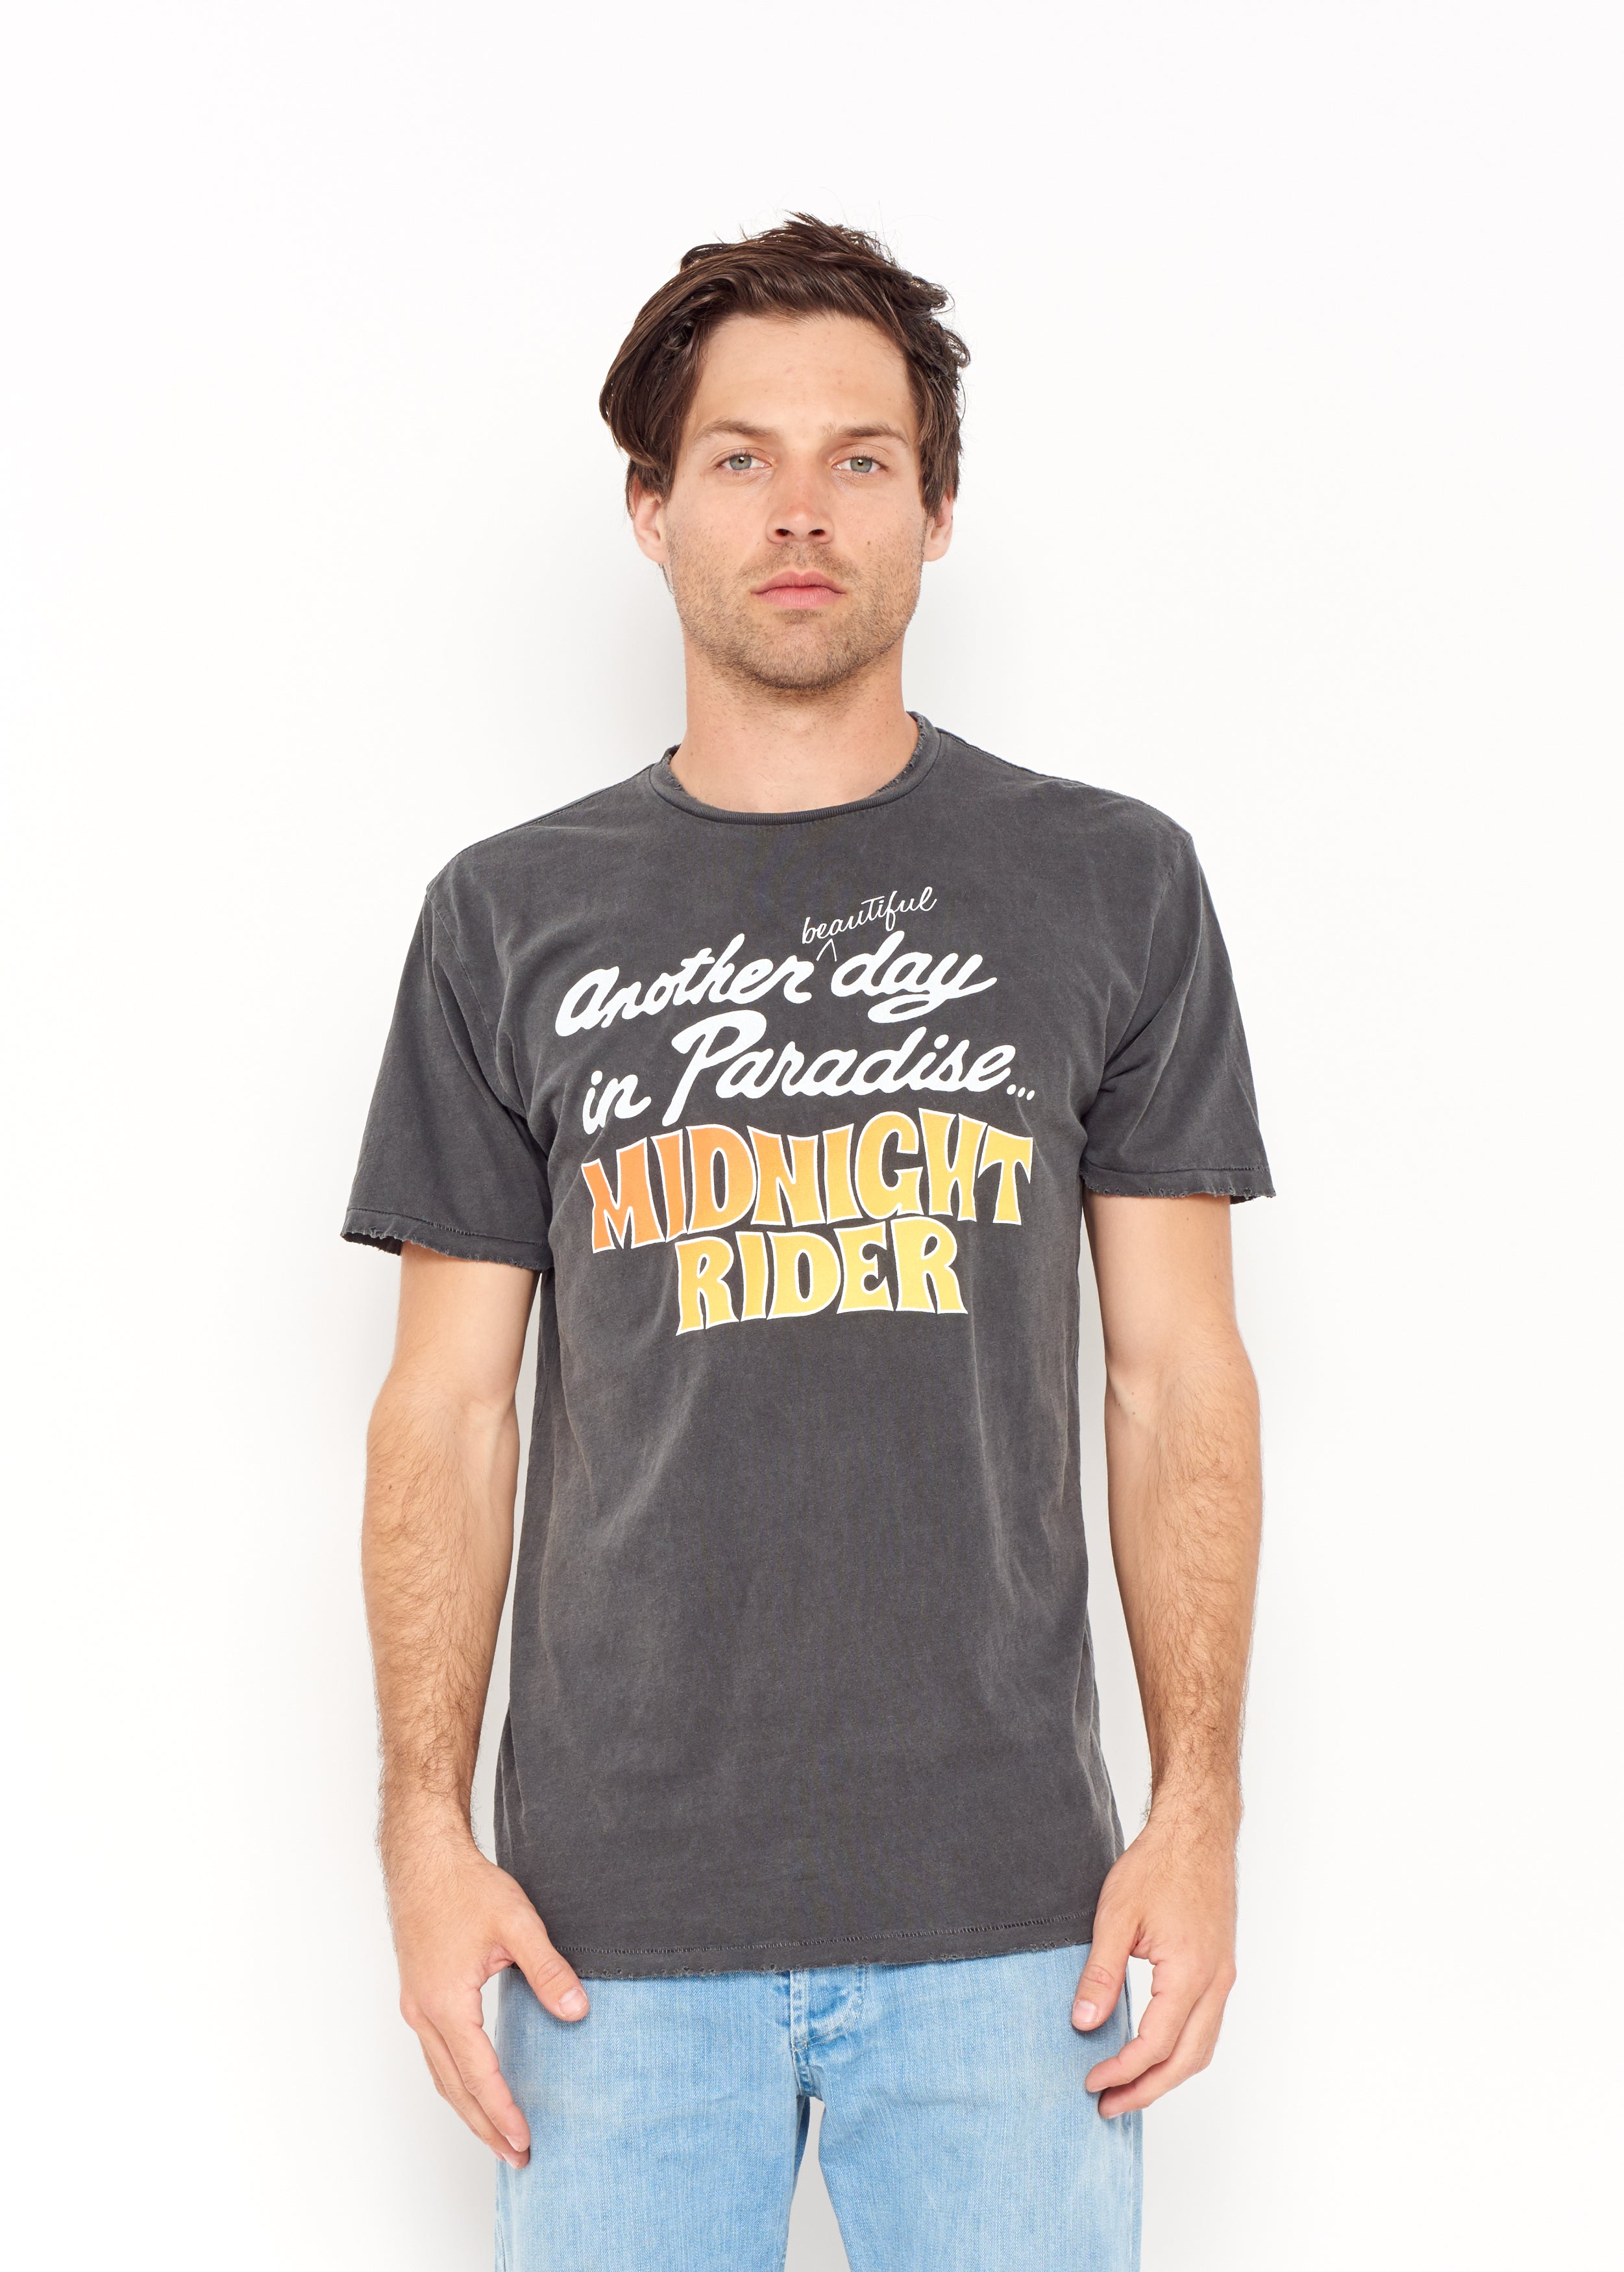 Another Day in Paradise Men's Crew - Vintage Black - Men's Tee Shirt - Midnight Rider